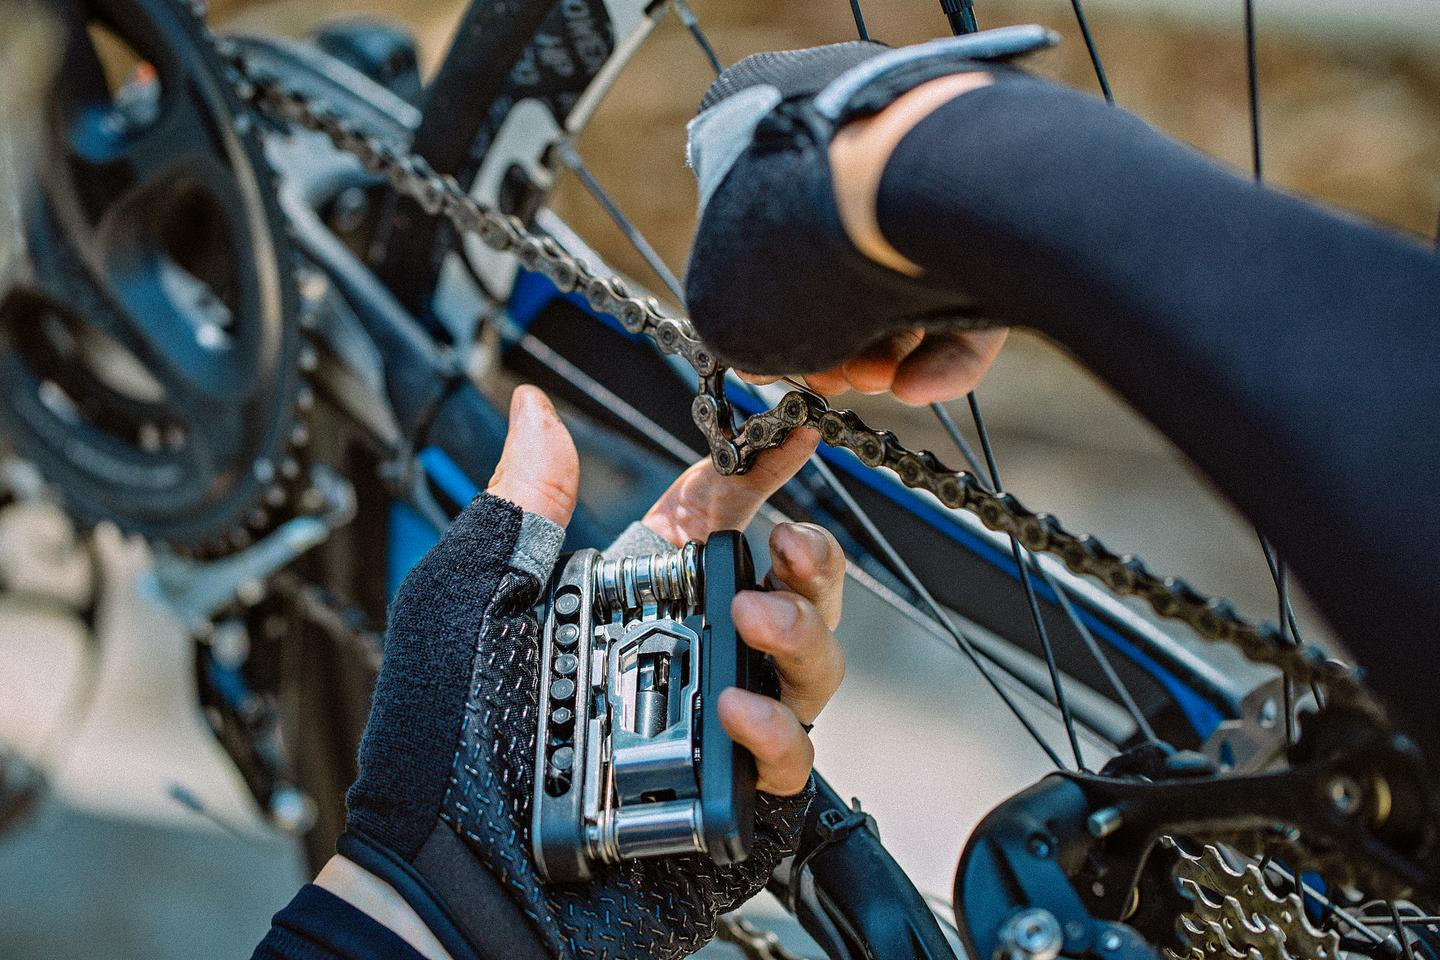 The BikePal can be used for tire and spoke repairs, chain servicing, handlebar adjustment, tightening loose bolts and screws, and more